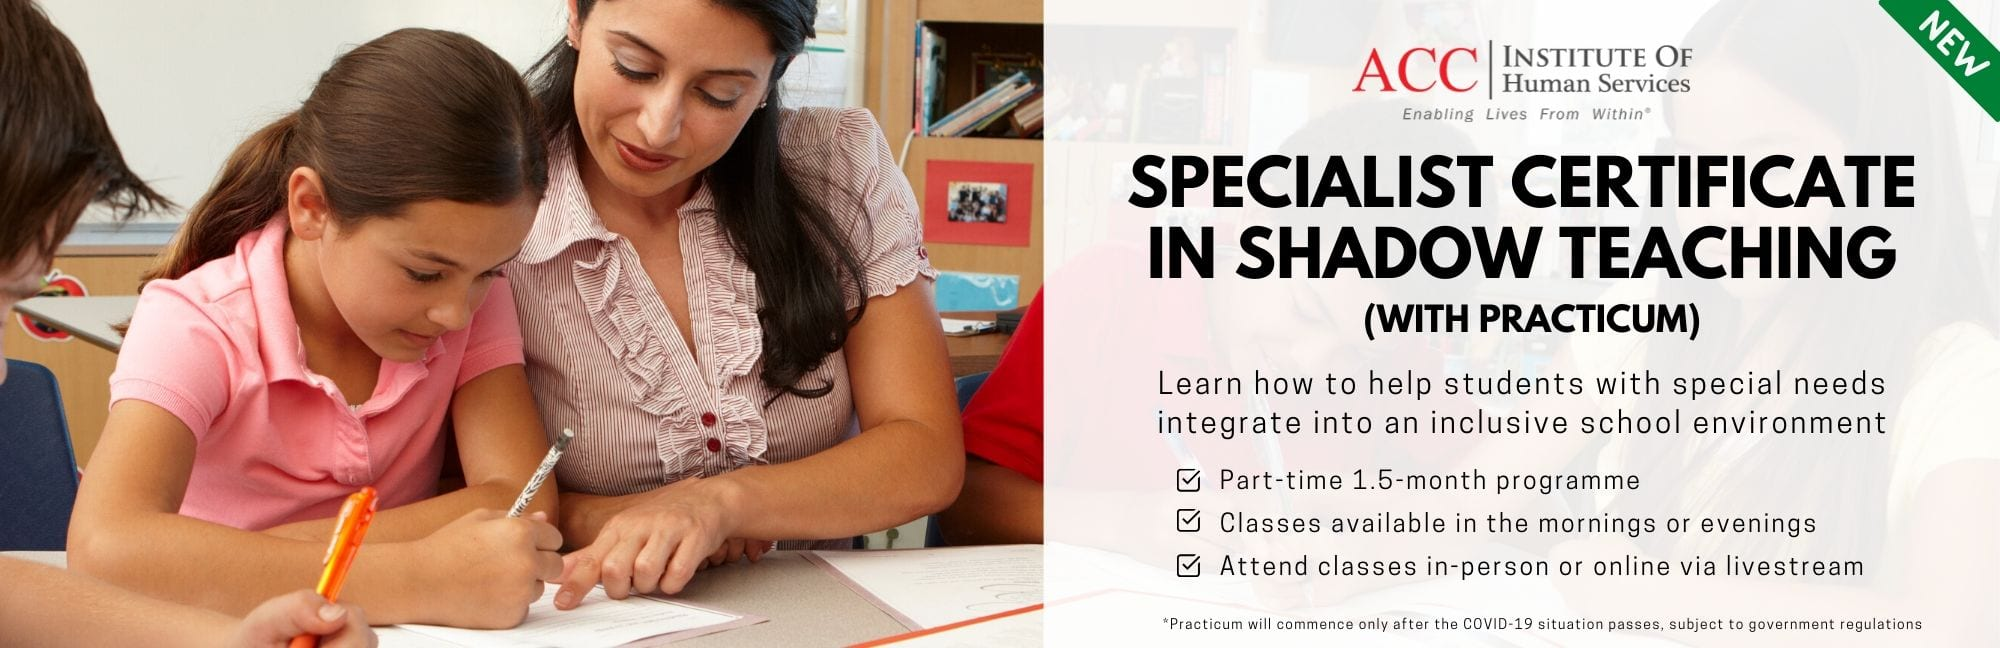 Specialist certificate in shadow teaching